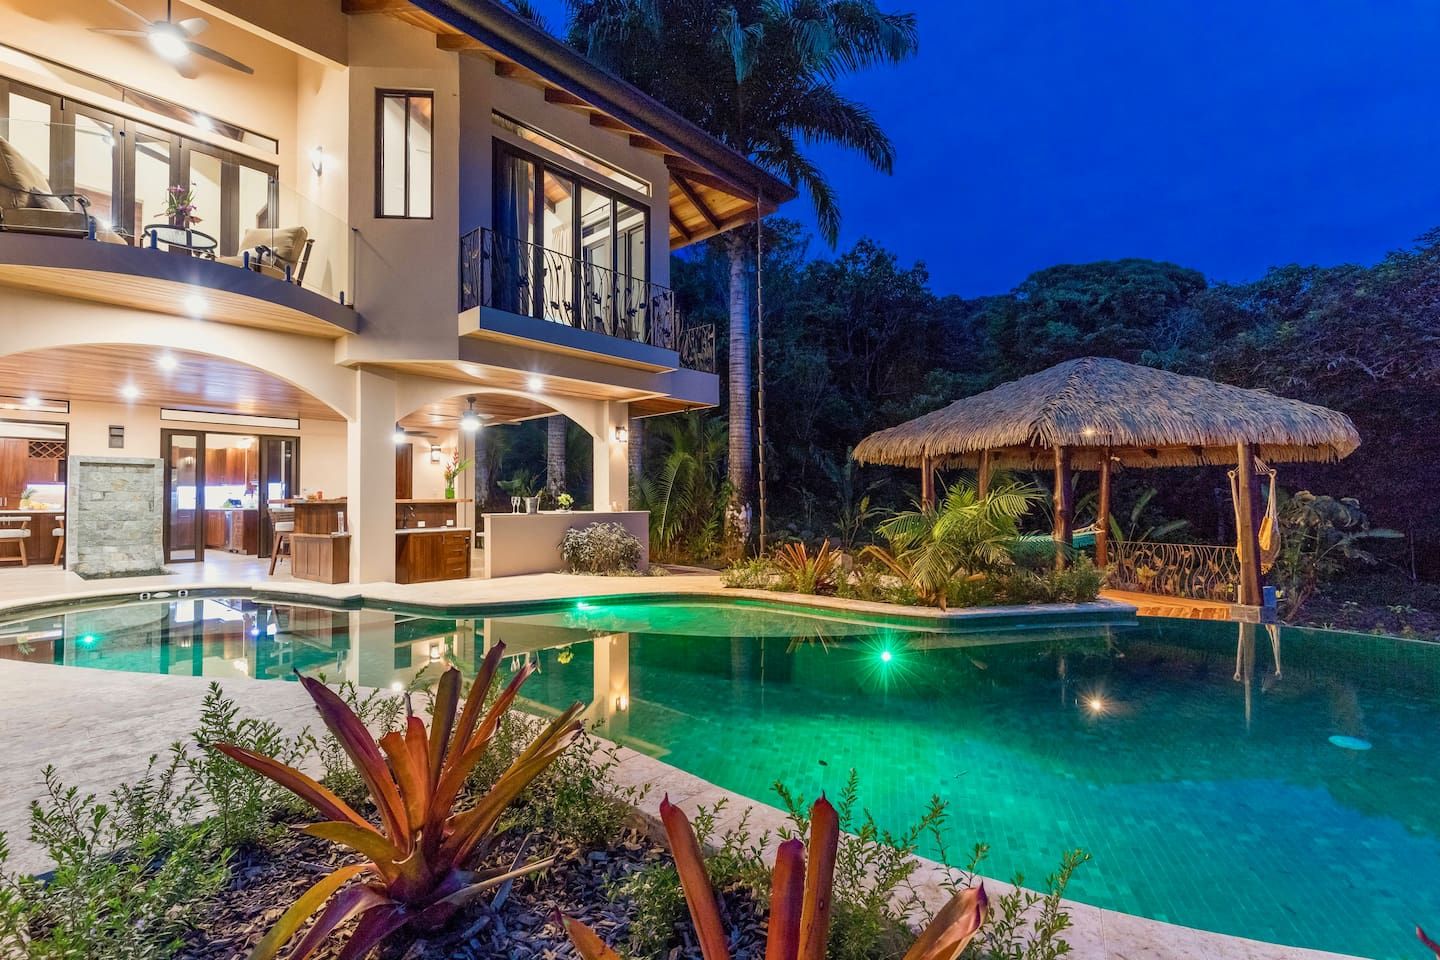 Big Outdoor Living Space, Illuminated Tropical Evening